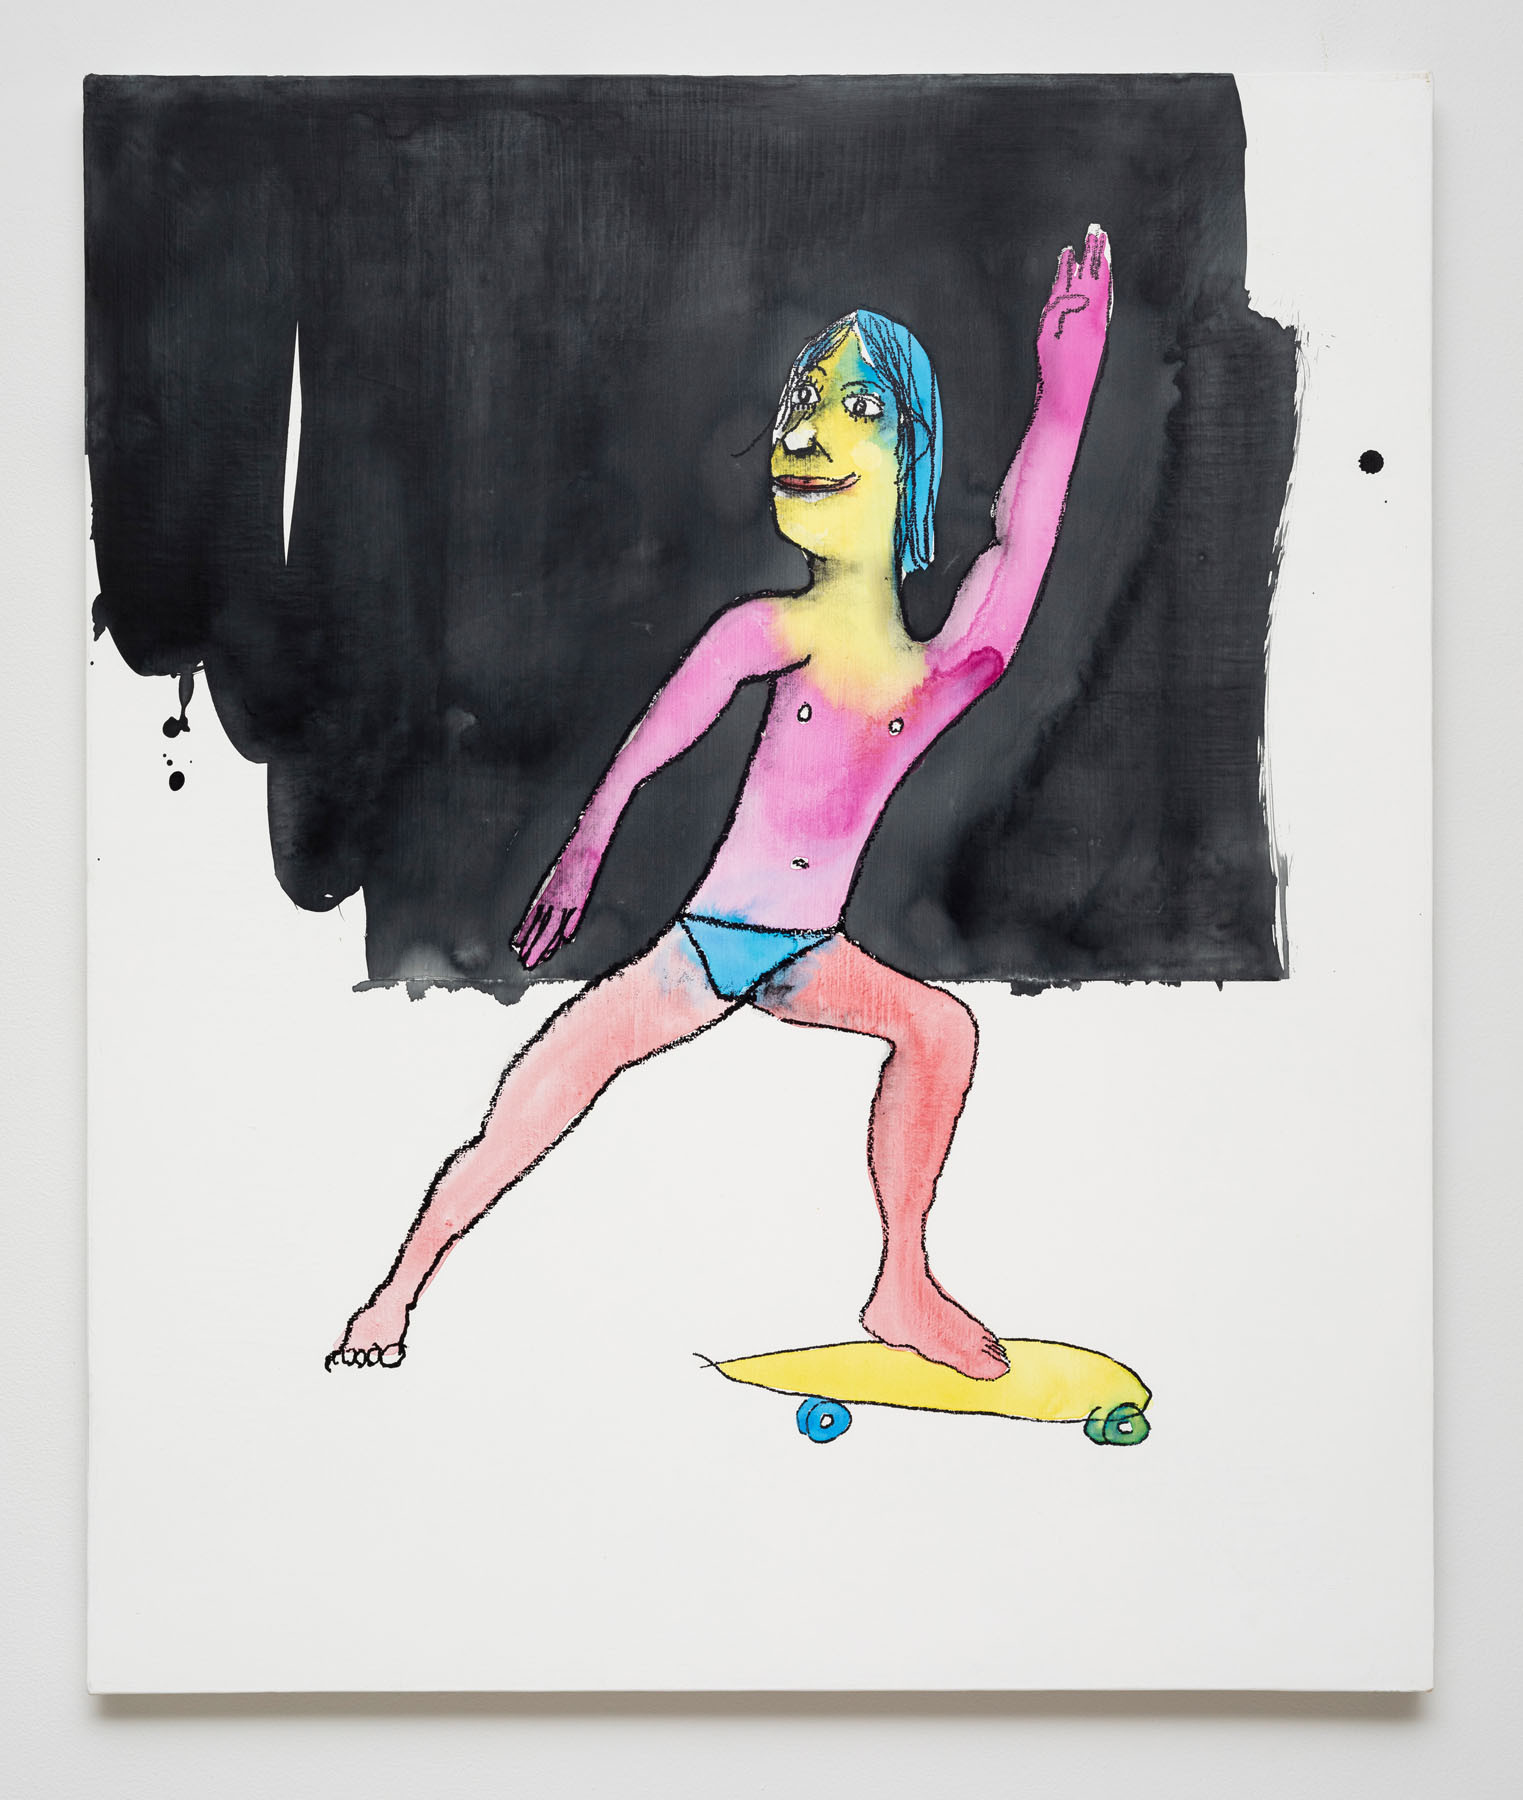 Dan McCarthy  Zuma Beach Skater, 2019  Silkscreen ink, acrylic and gesso on canvas  36 x 30 inches